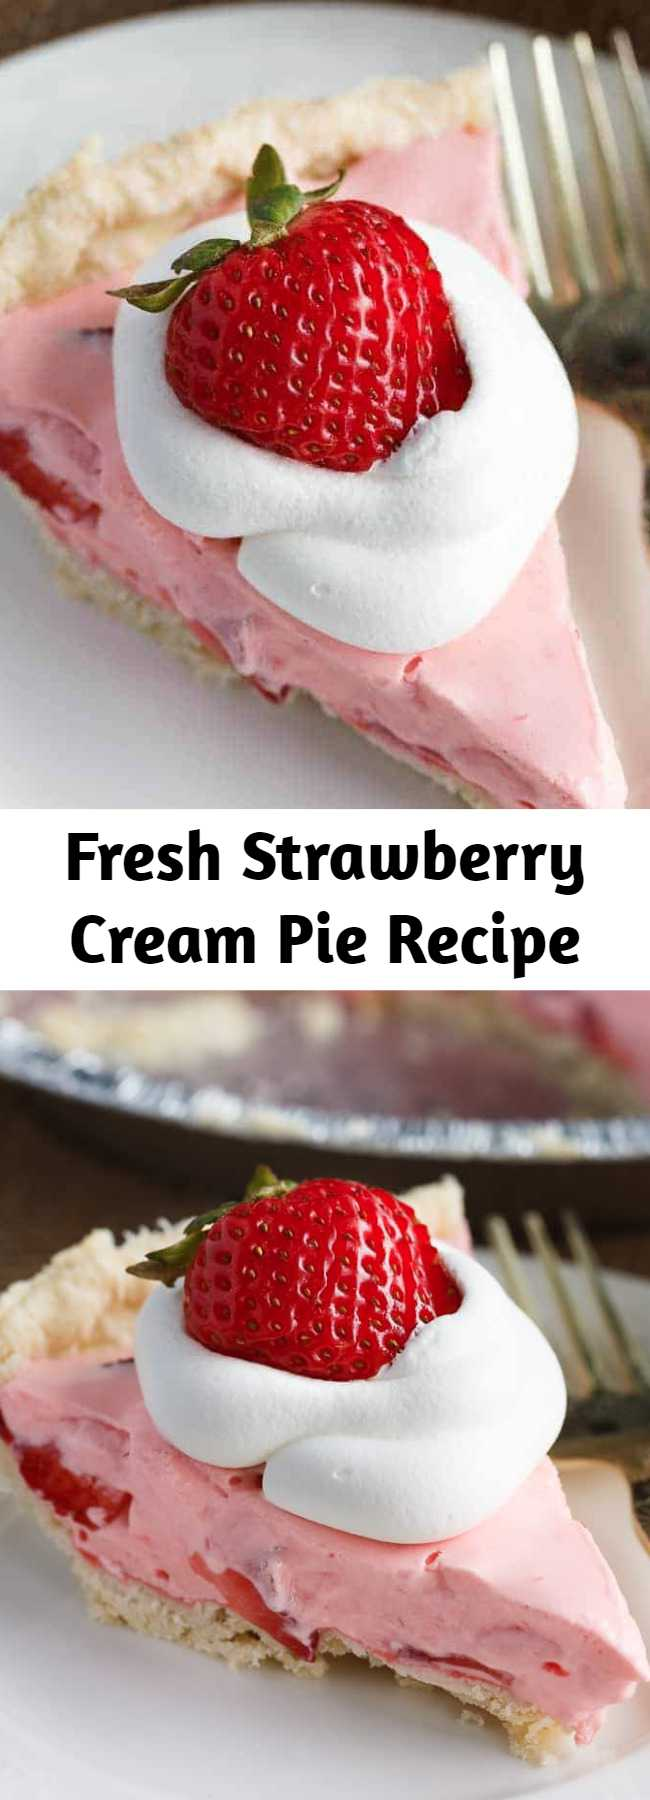 Fresh Strawberry Cream Pie Recipe - It's light, creamy, sweet and is like pure heaven in your mouth. Strawberry lovers will go nuts over this easy pie recipe. Seriously, it's soooo good. Tastes like a dream! This easy summer pie is creamy, sweet and refreshing. #dessert #summer